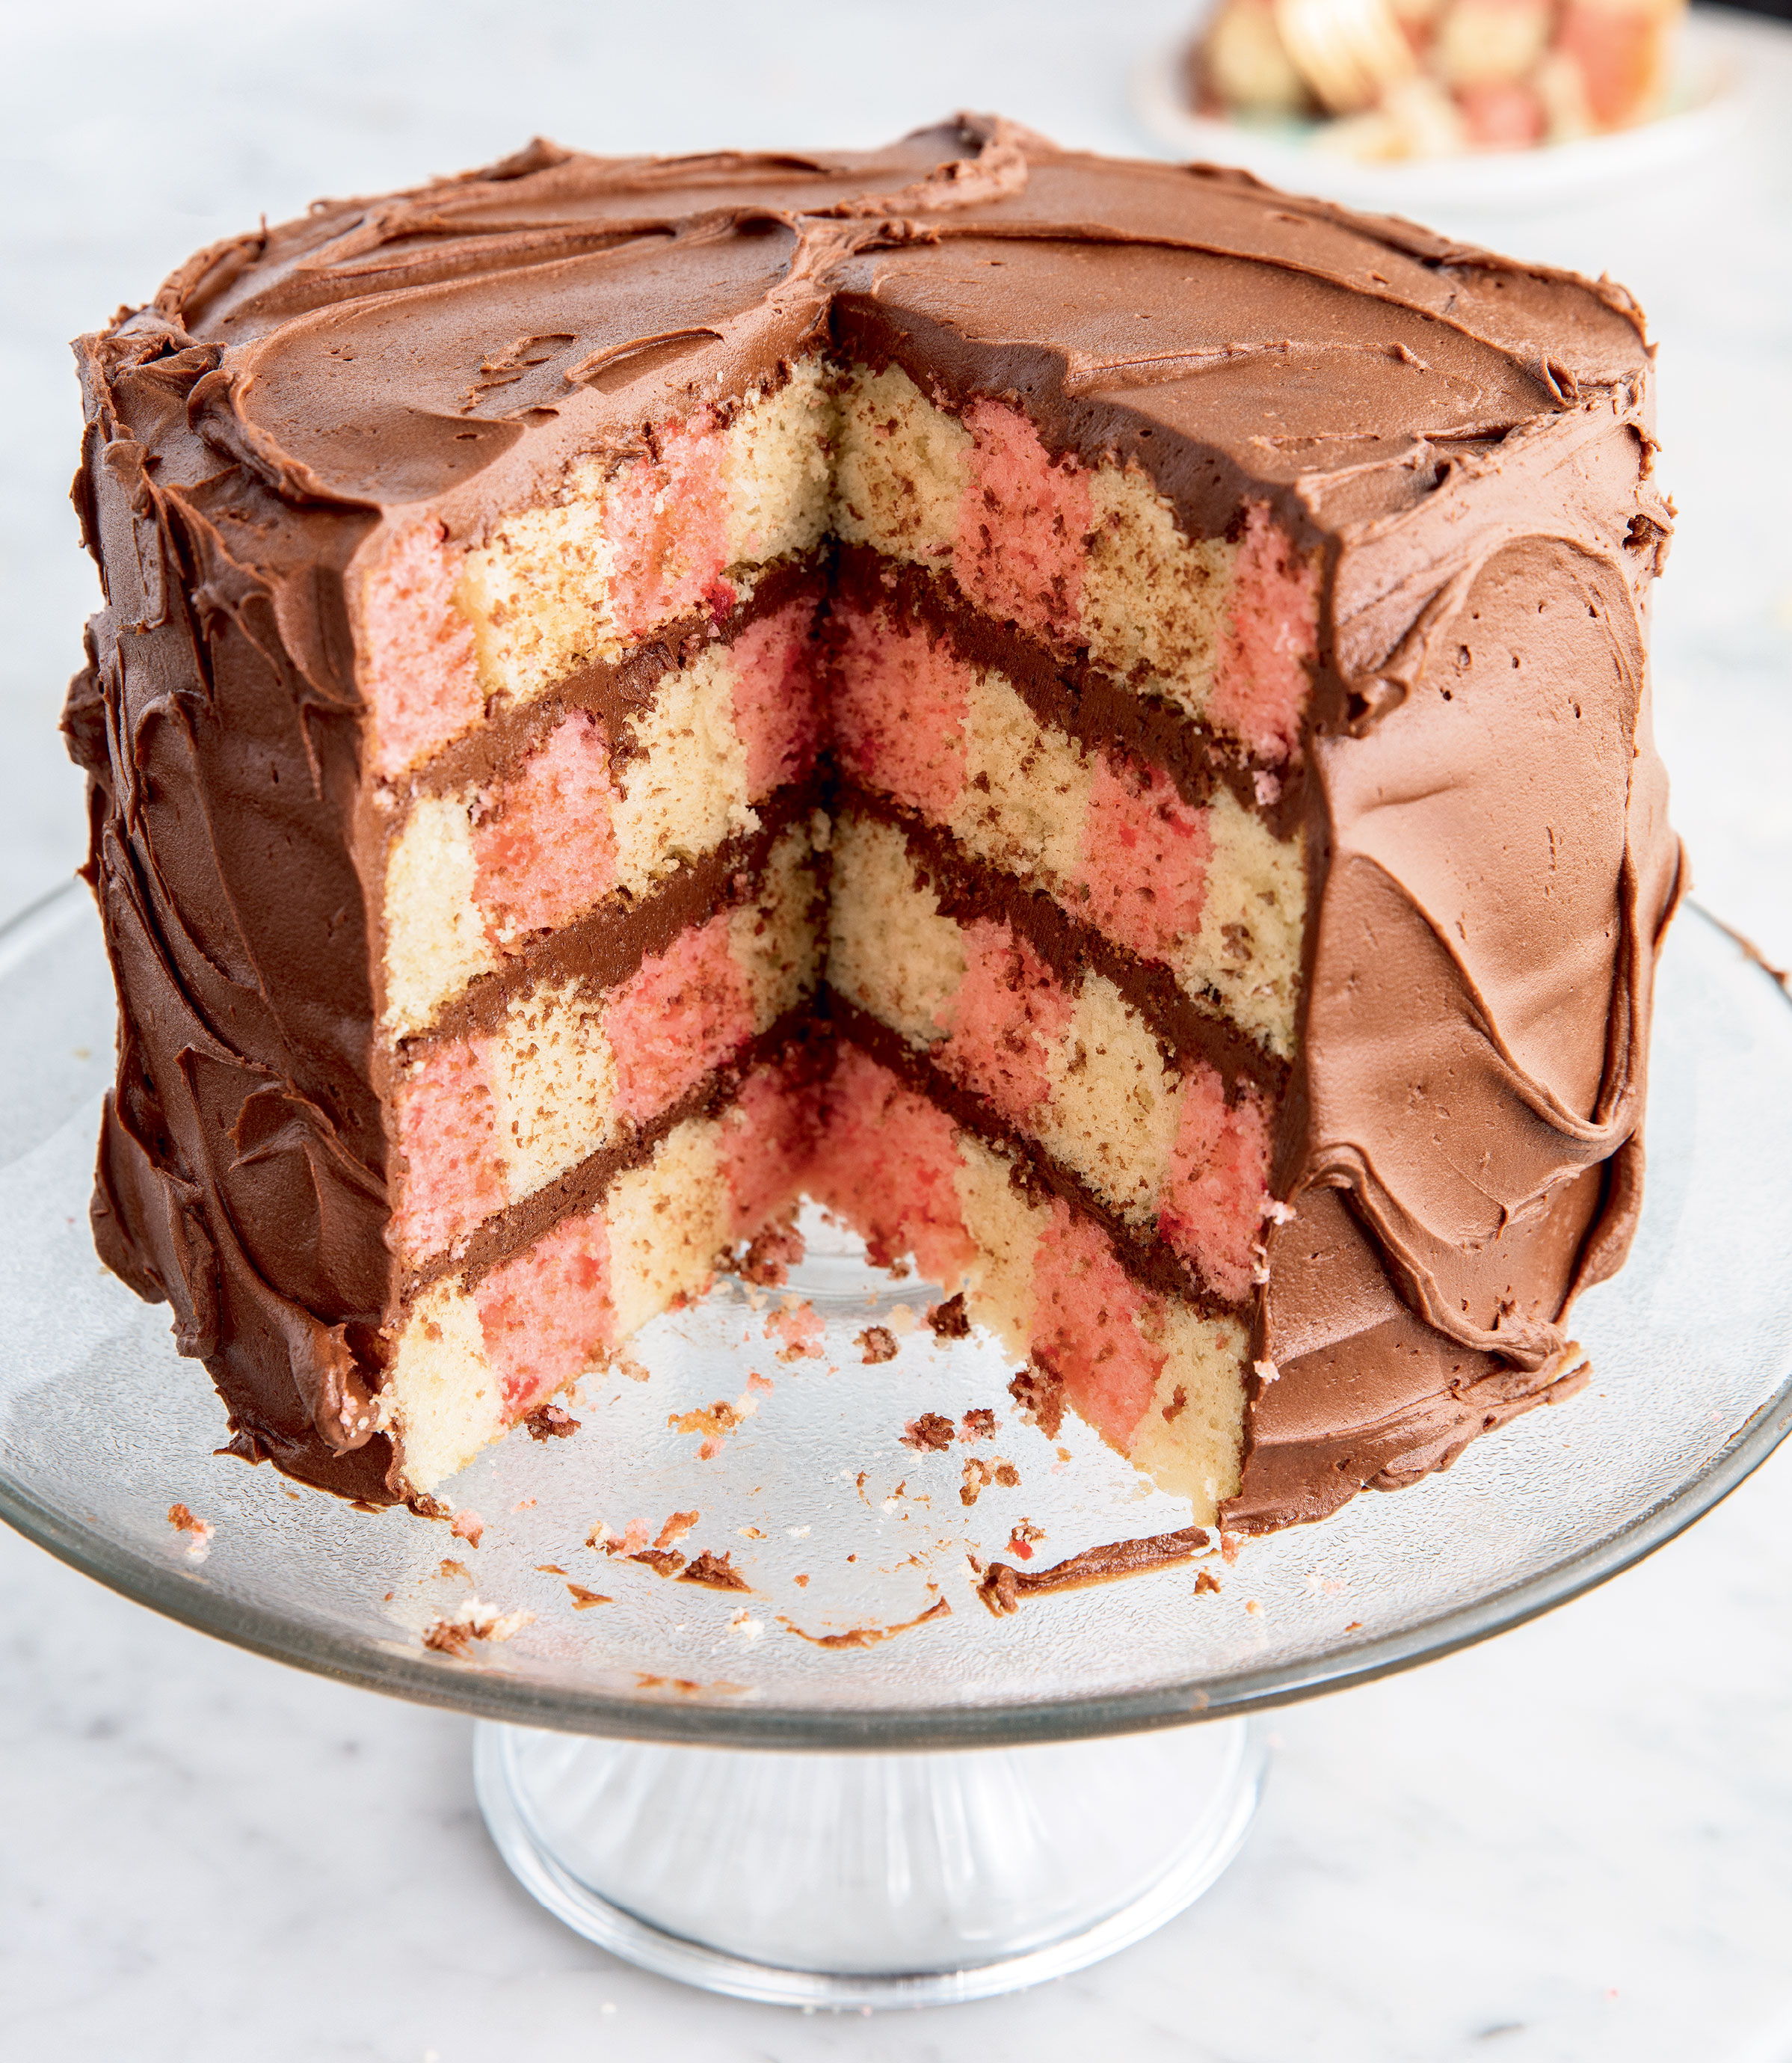 Checkerboard Cake, Photo by Ethan Calabrese